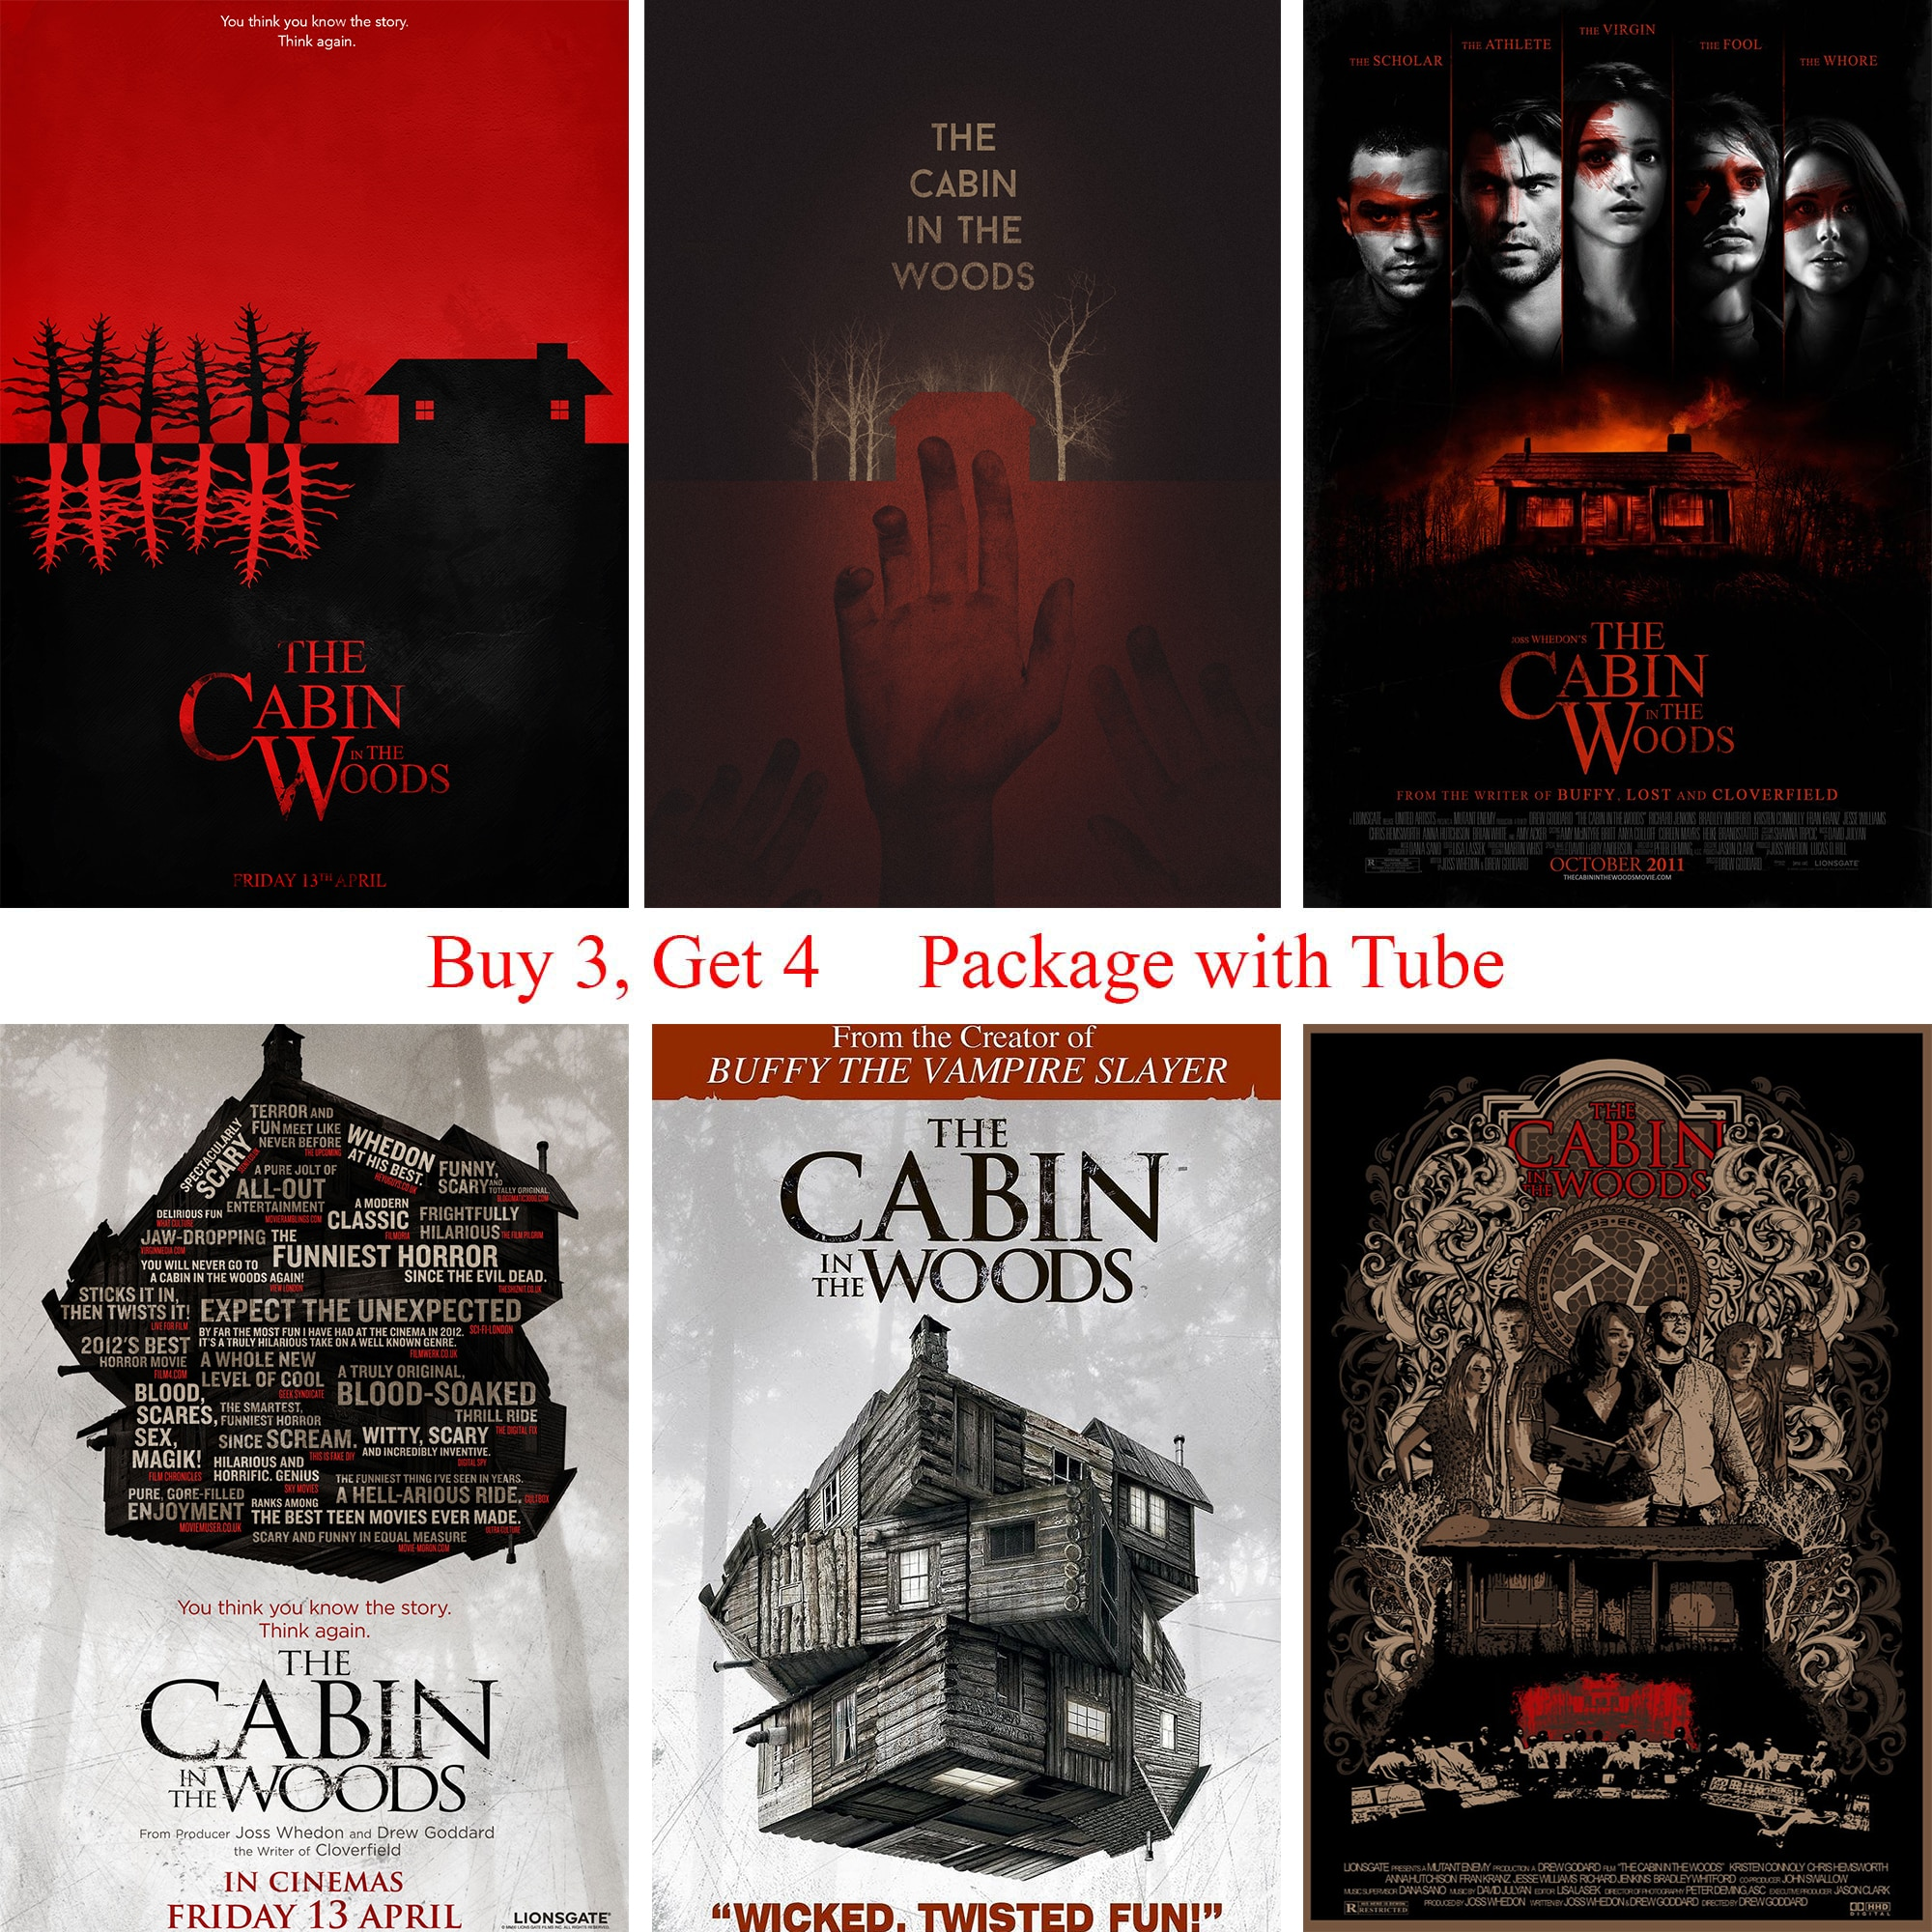 The Cabin in the Woods Poster Clear Image Wall Stickers Home Decoration High Quality Prints White Coated Paper home art Brand